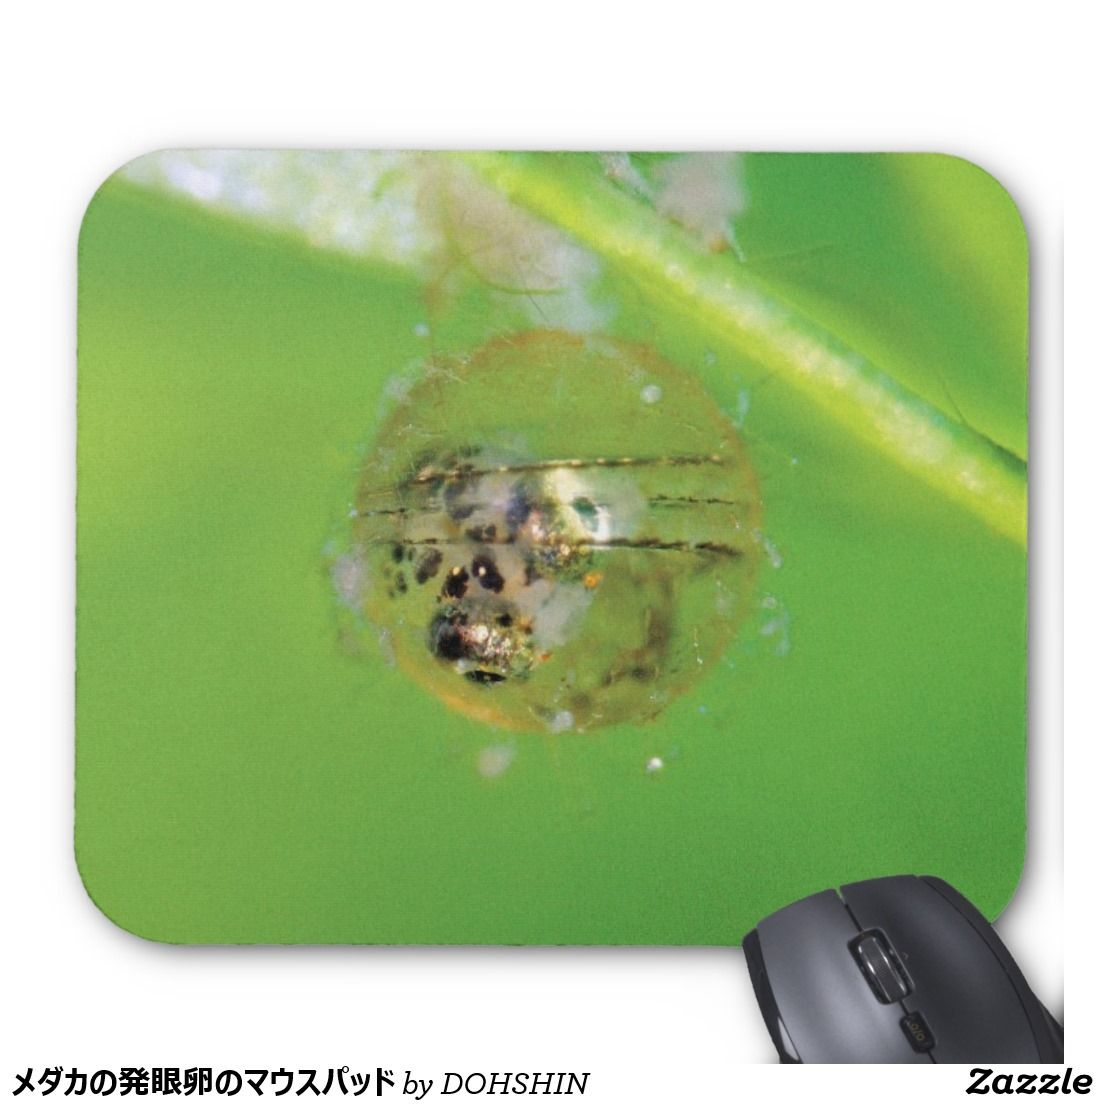 Mouse pad of eyed egg of cyprinodont